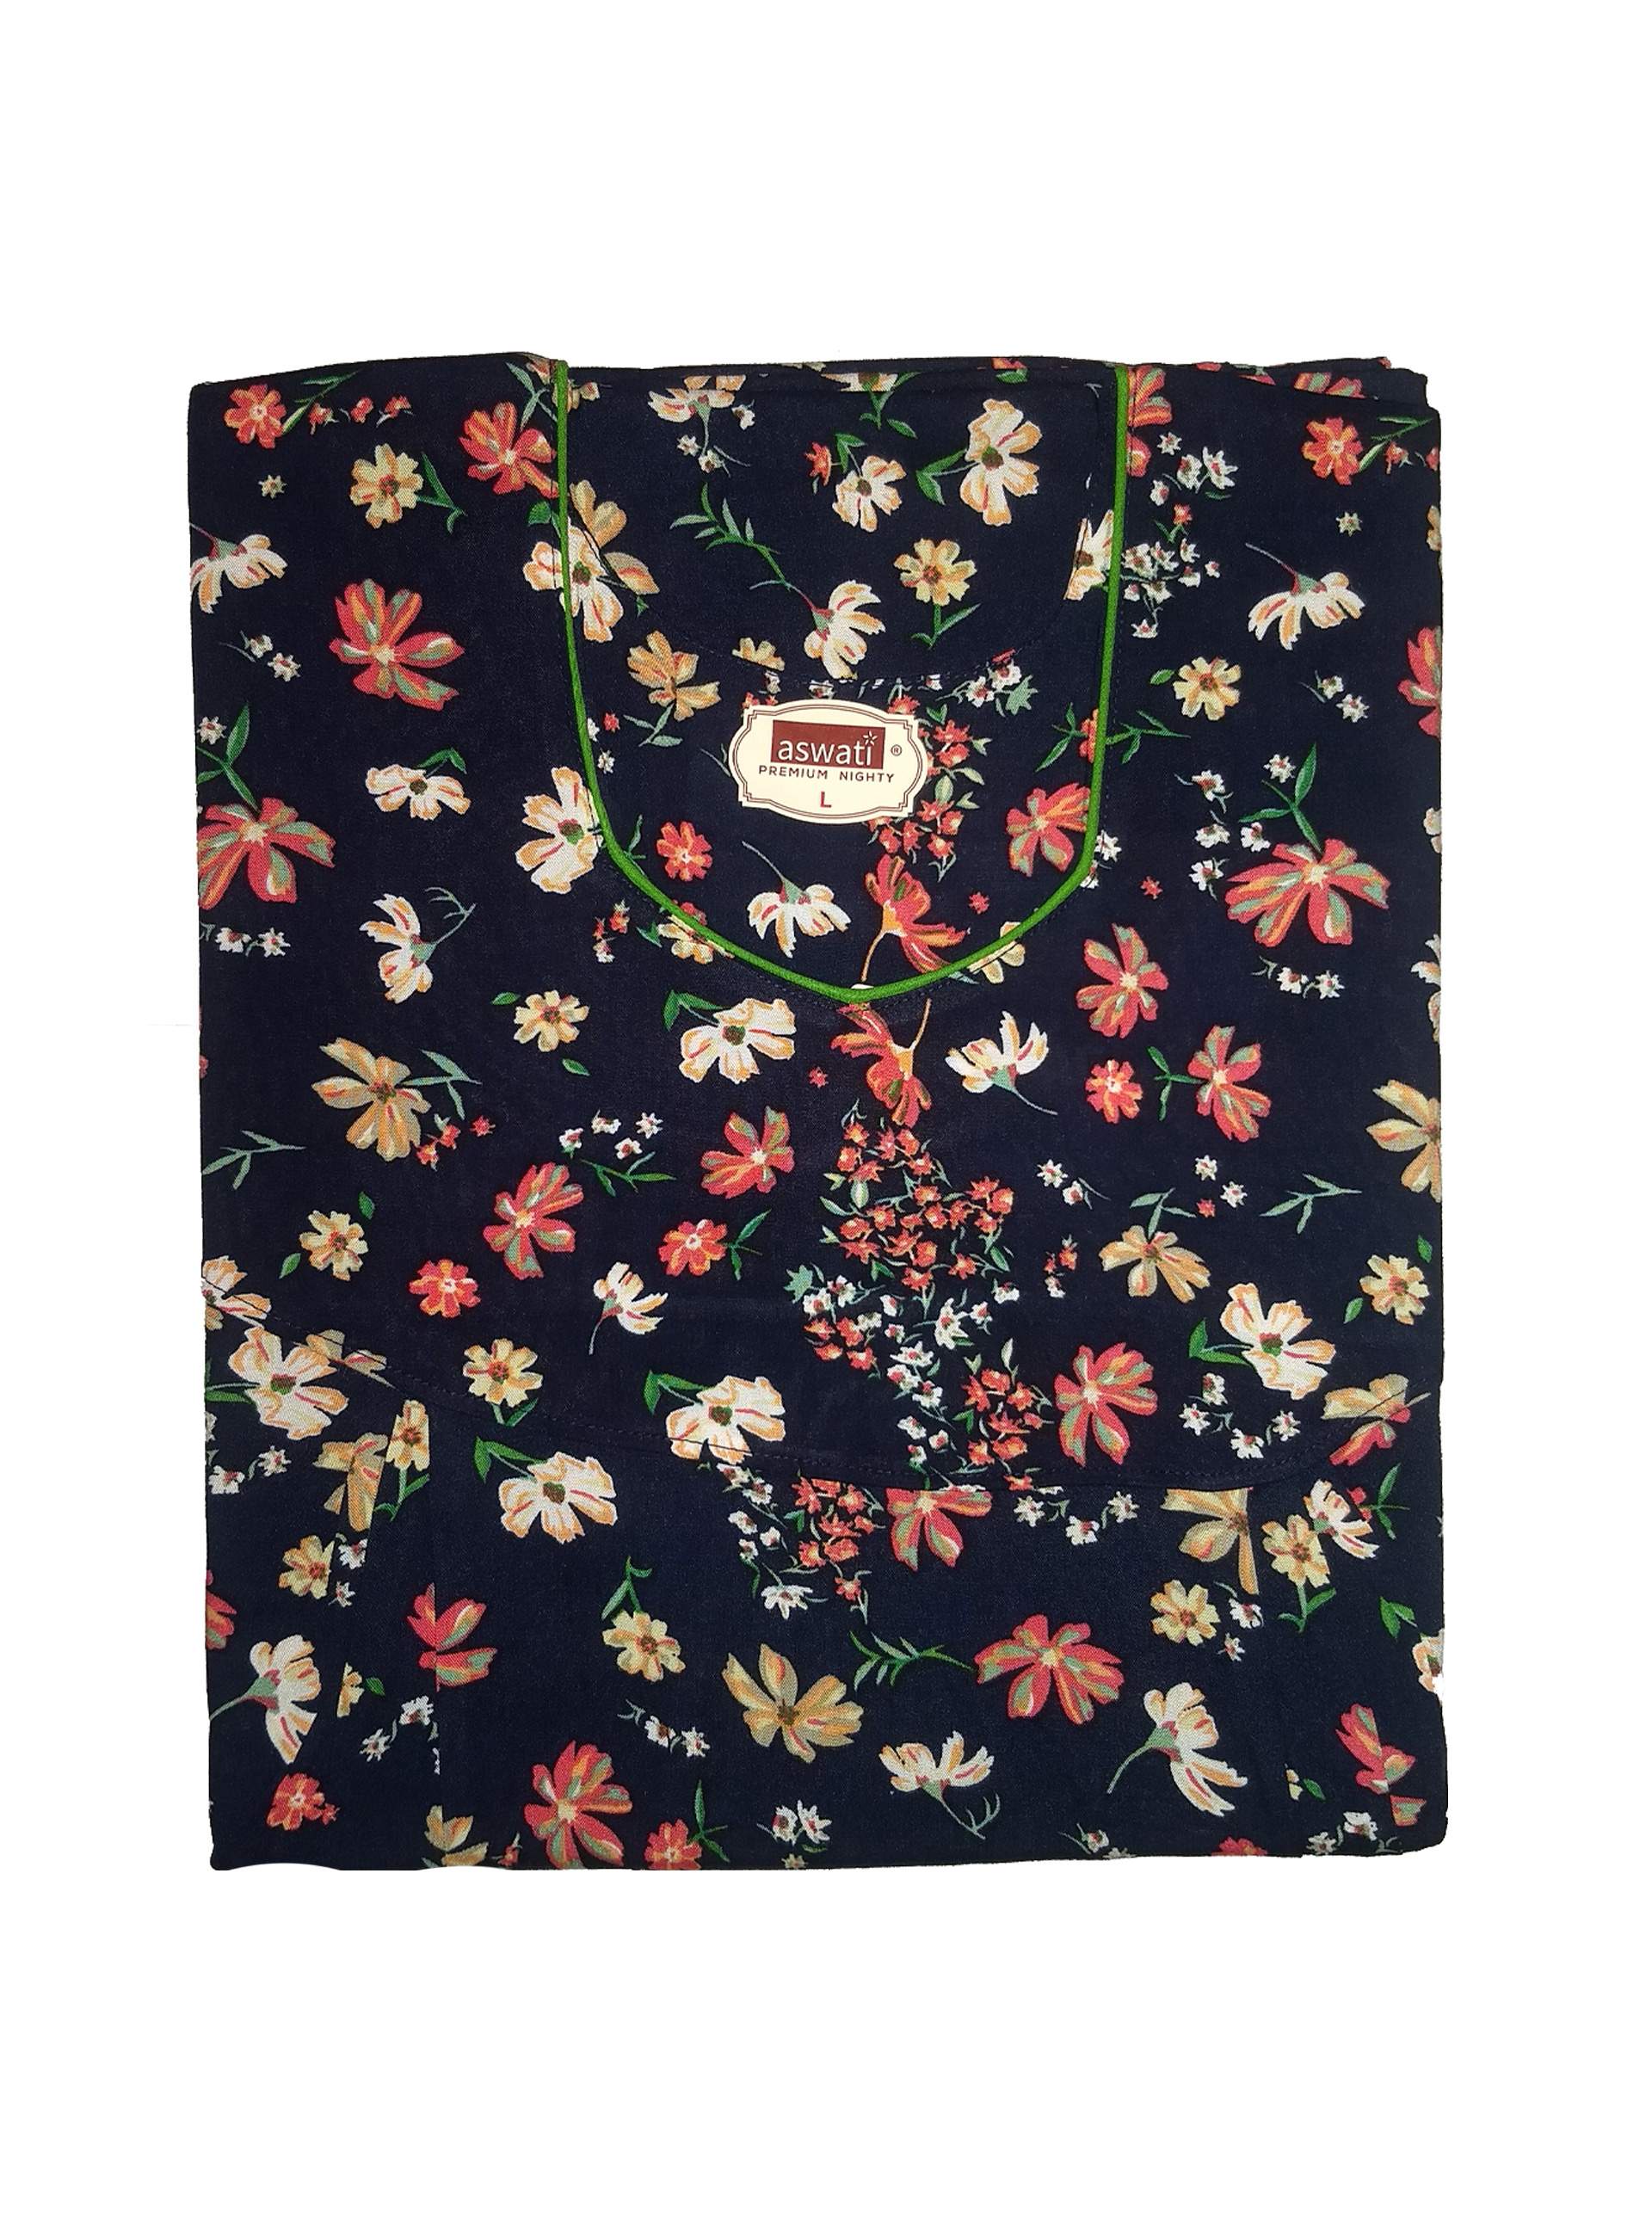 Premium Nighty (L) - Navy With Floral Prints